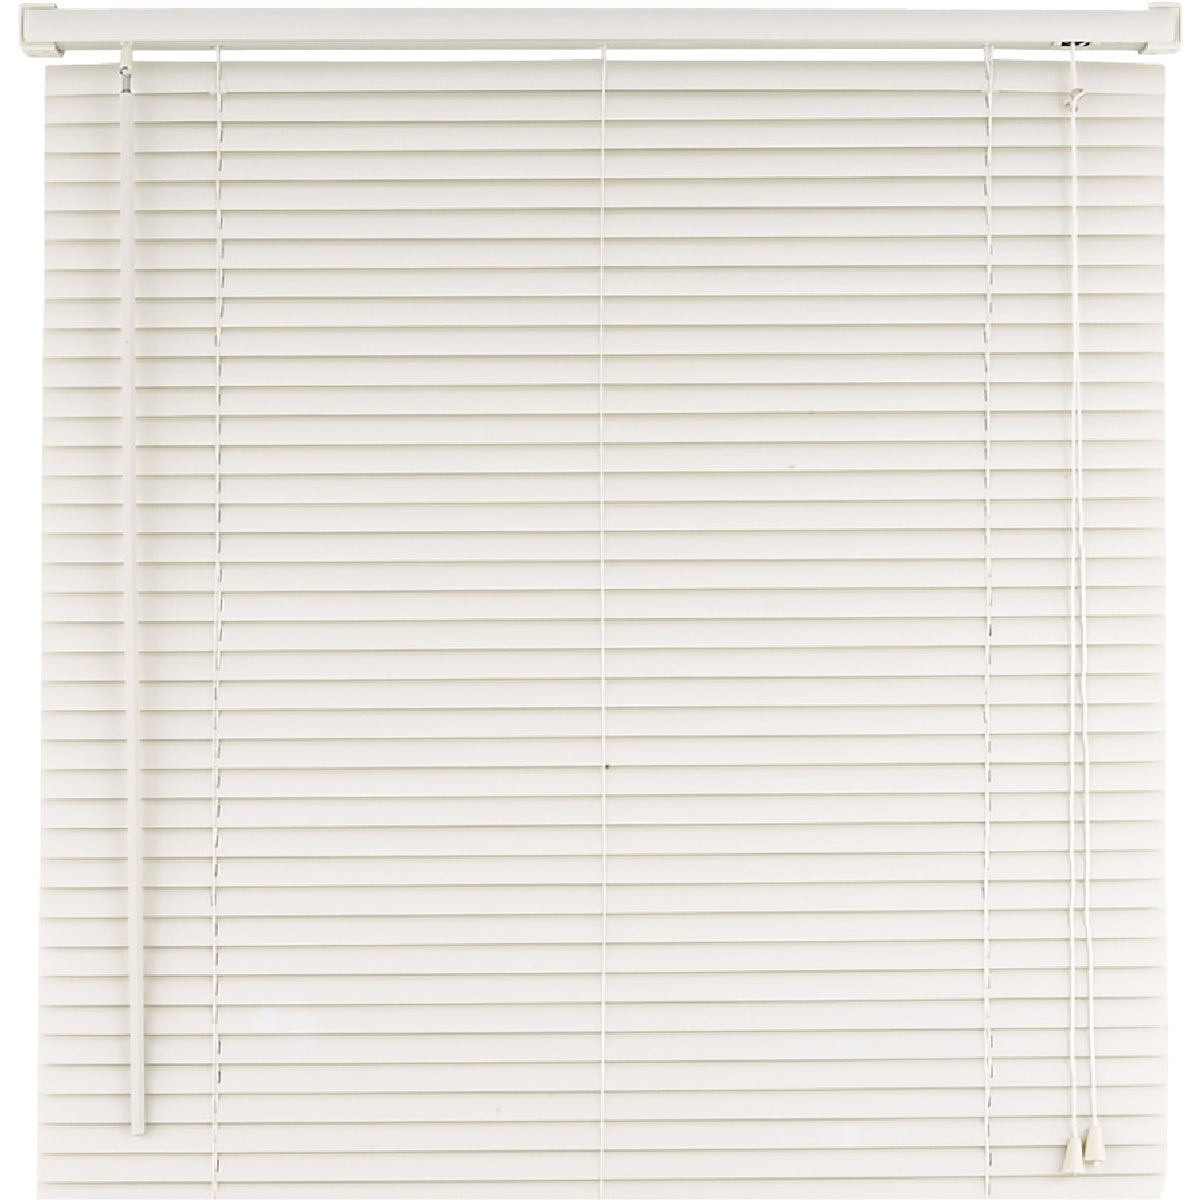 33X64 WHITE MINI BLIND - 3364-152 by Lotus Wind Incom